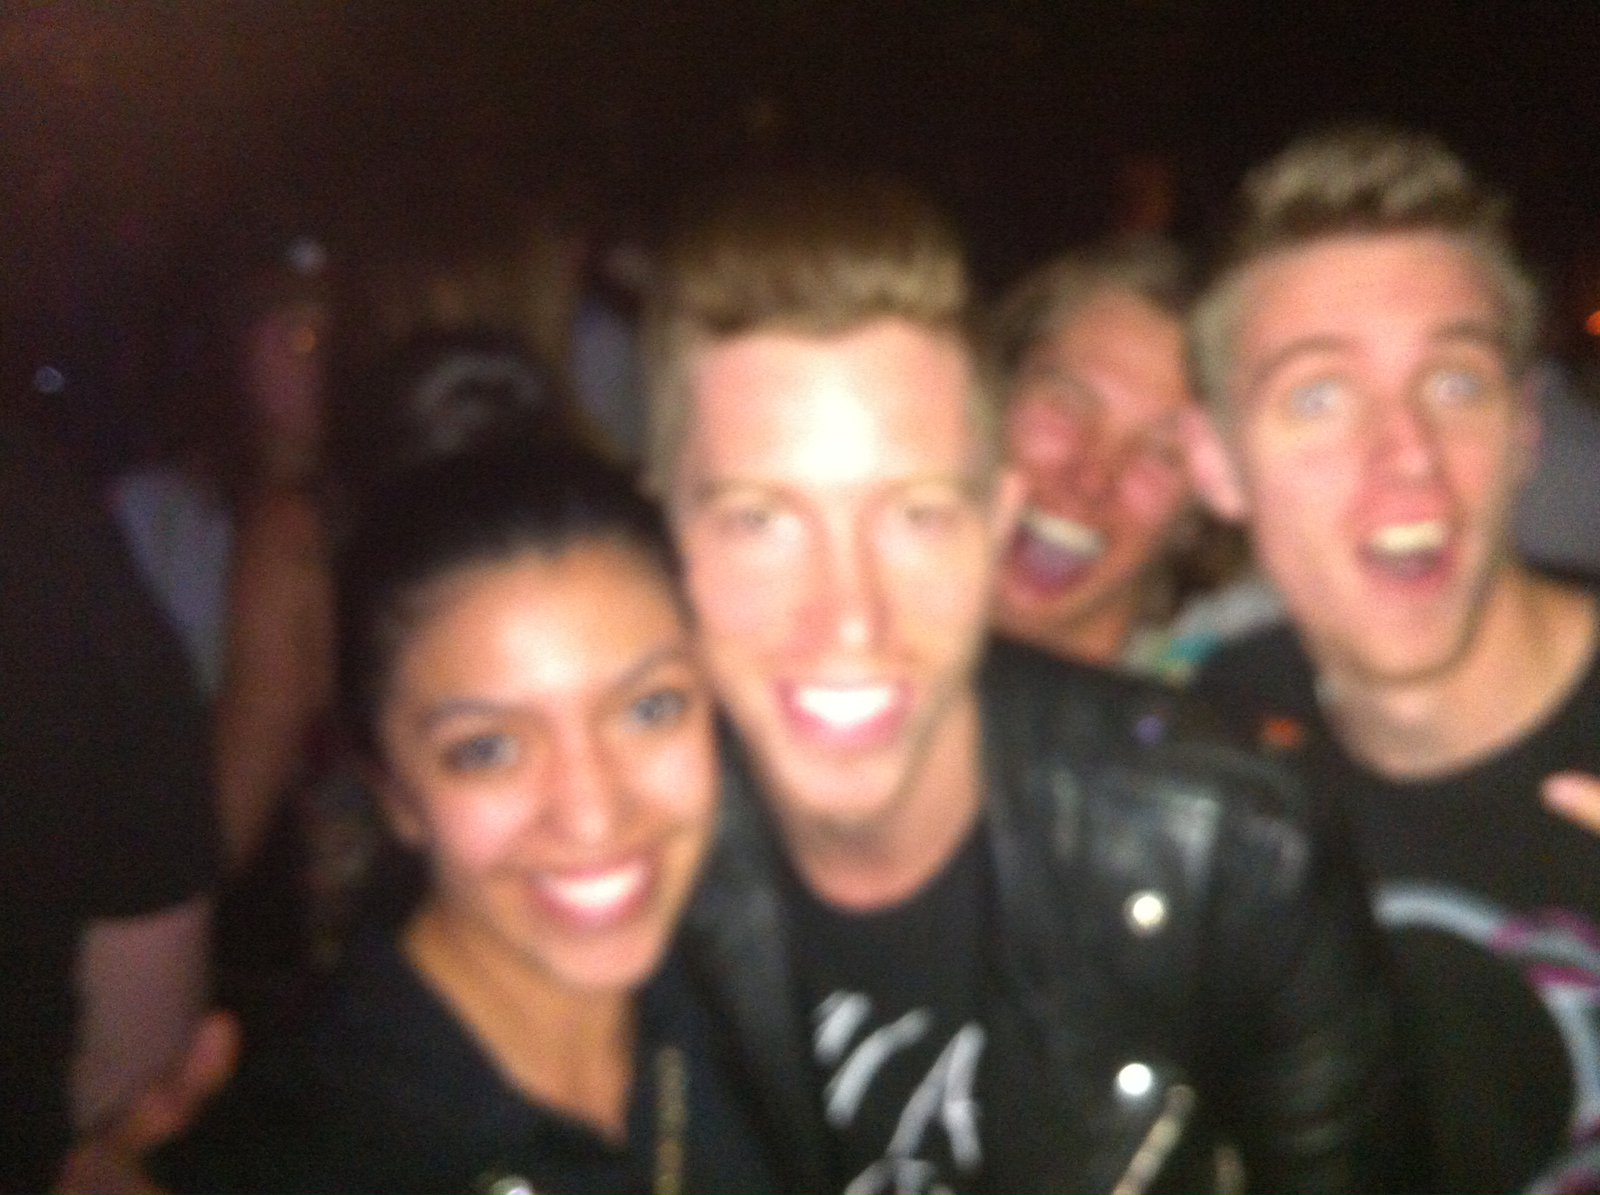 SHaun WHite photobomb